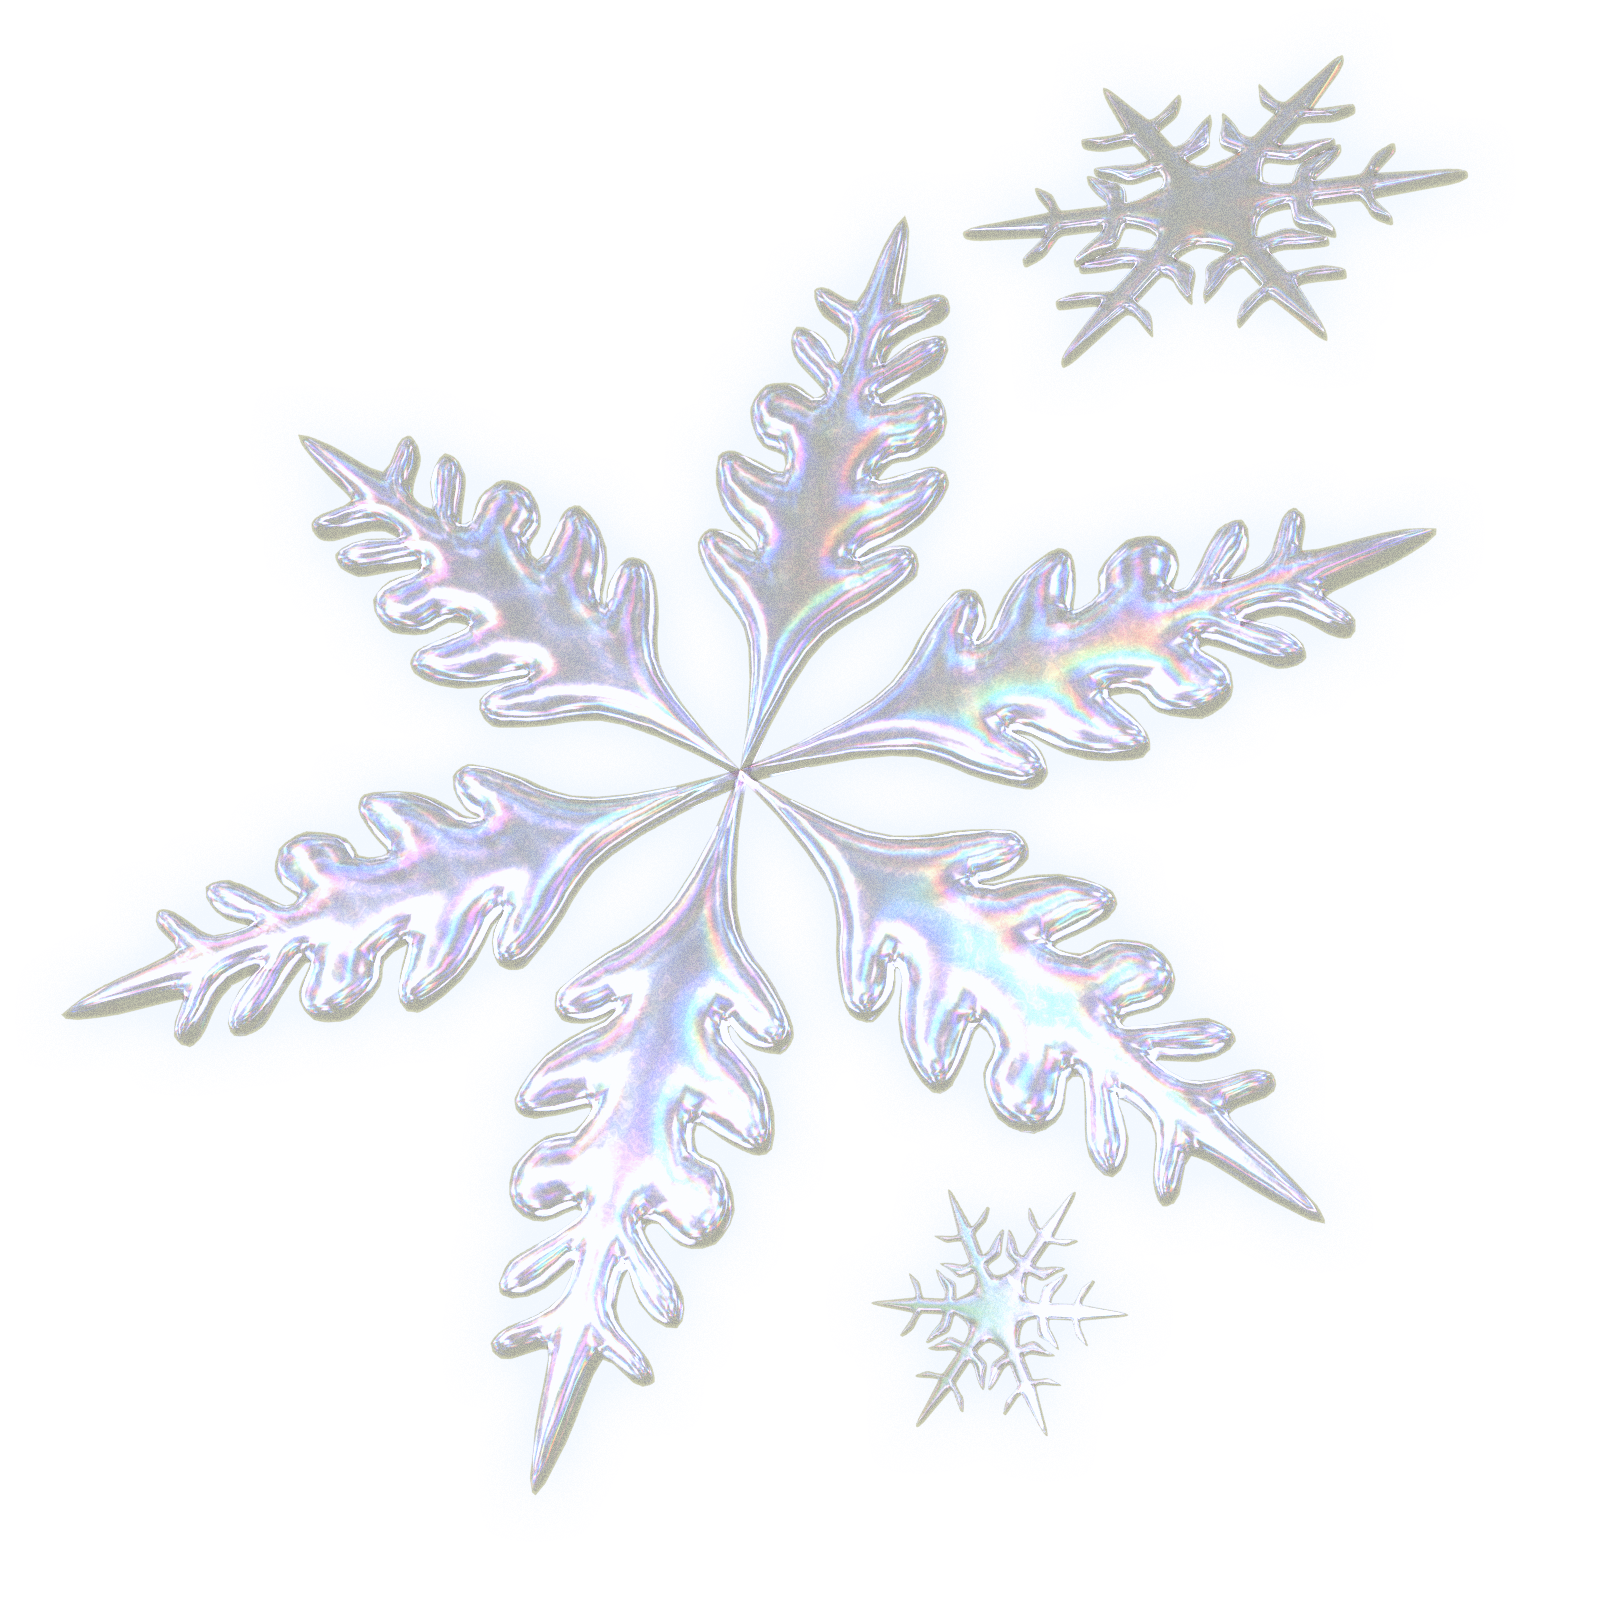 Blowing snowflake clipart banner freeuse library Snowfall ... banner freeuse library